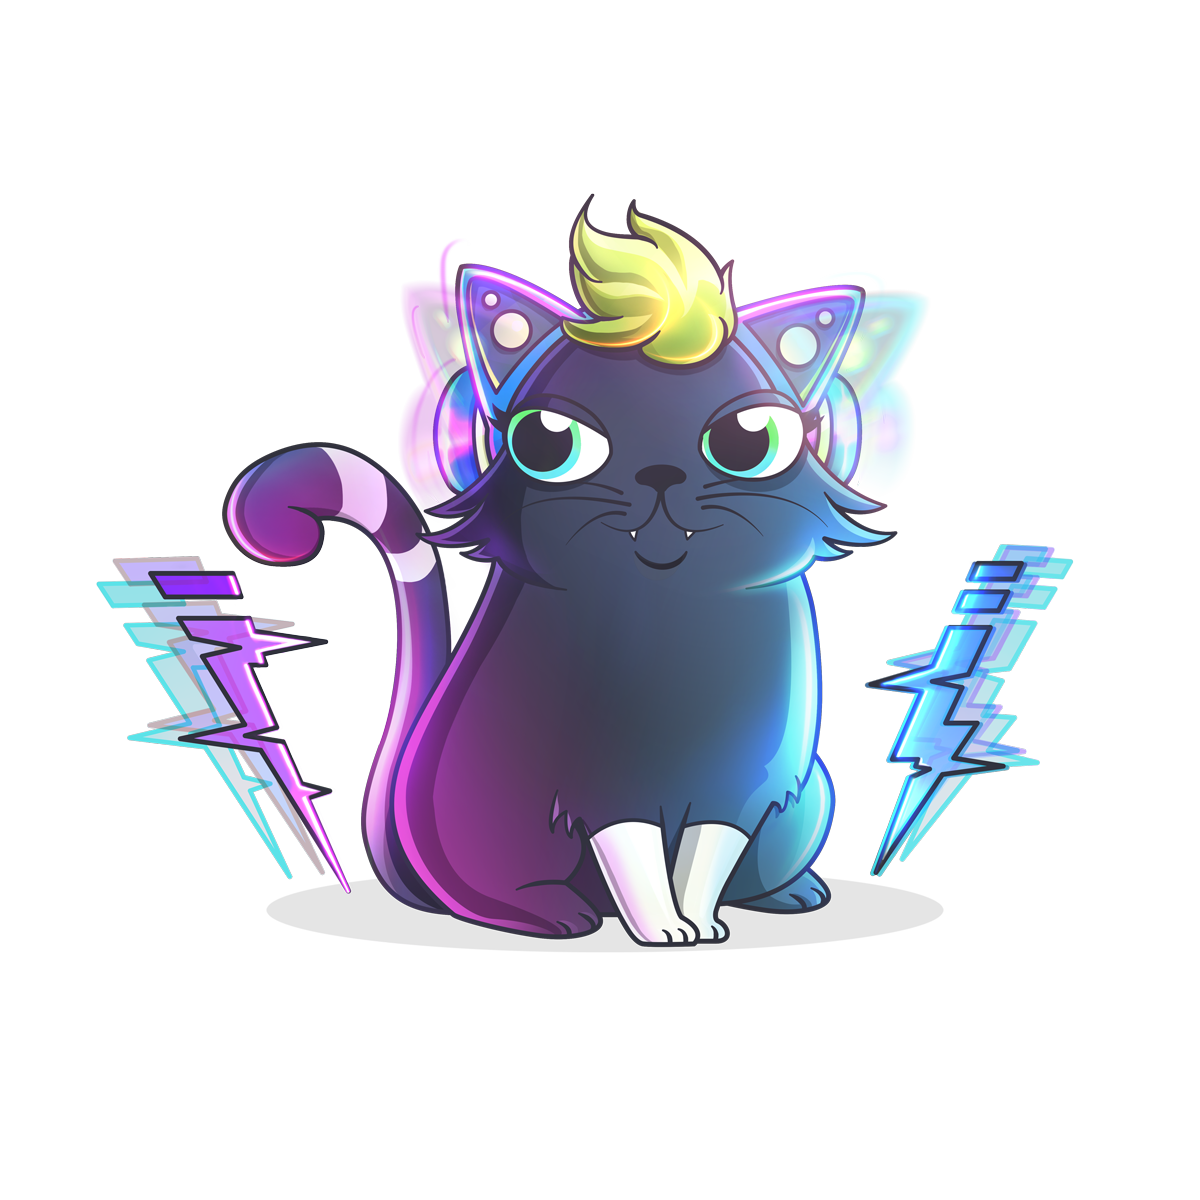 cryptokitty #1674567